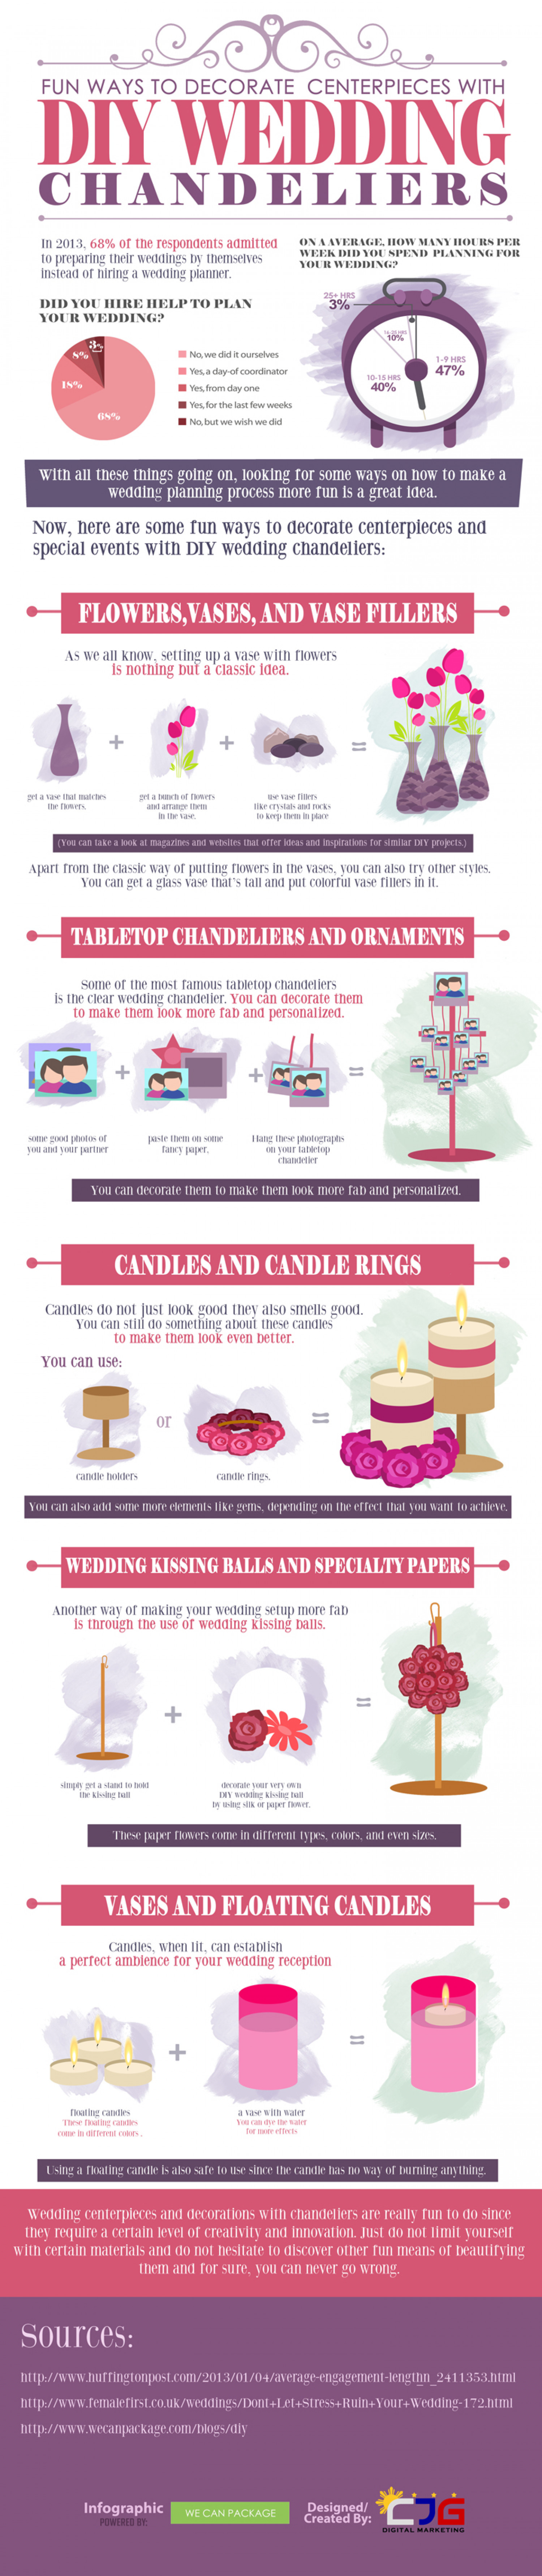 Fun Ways Decorate Centerpieces and Special Events DIY Wedding Infographic